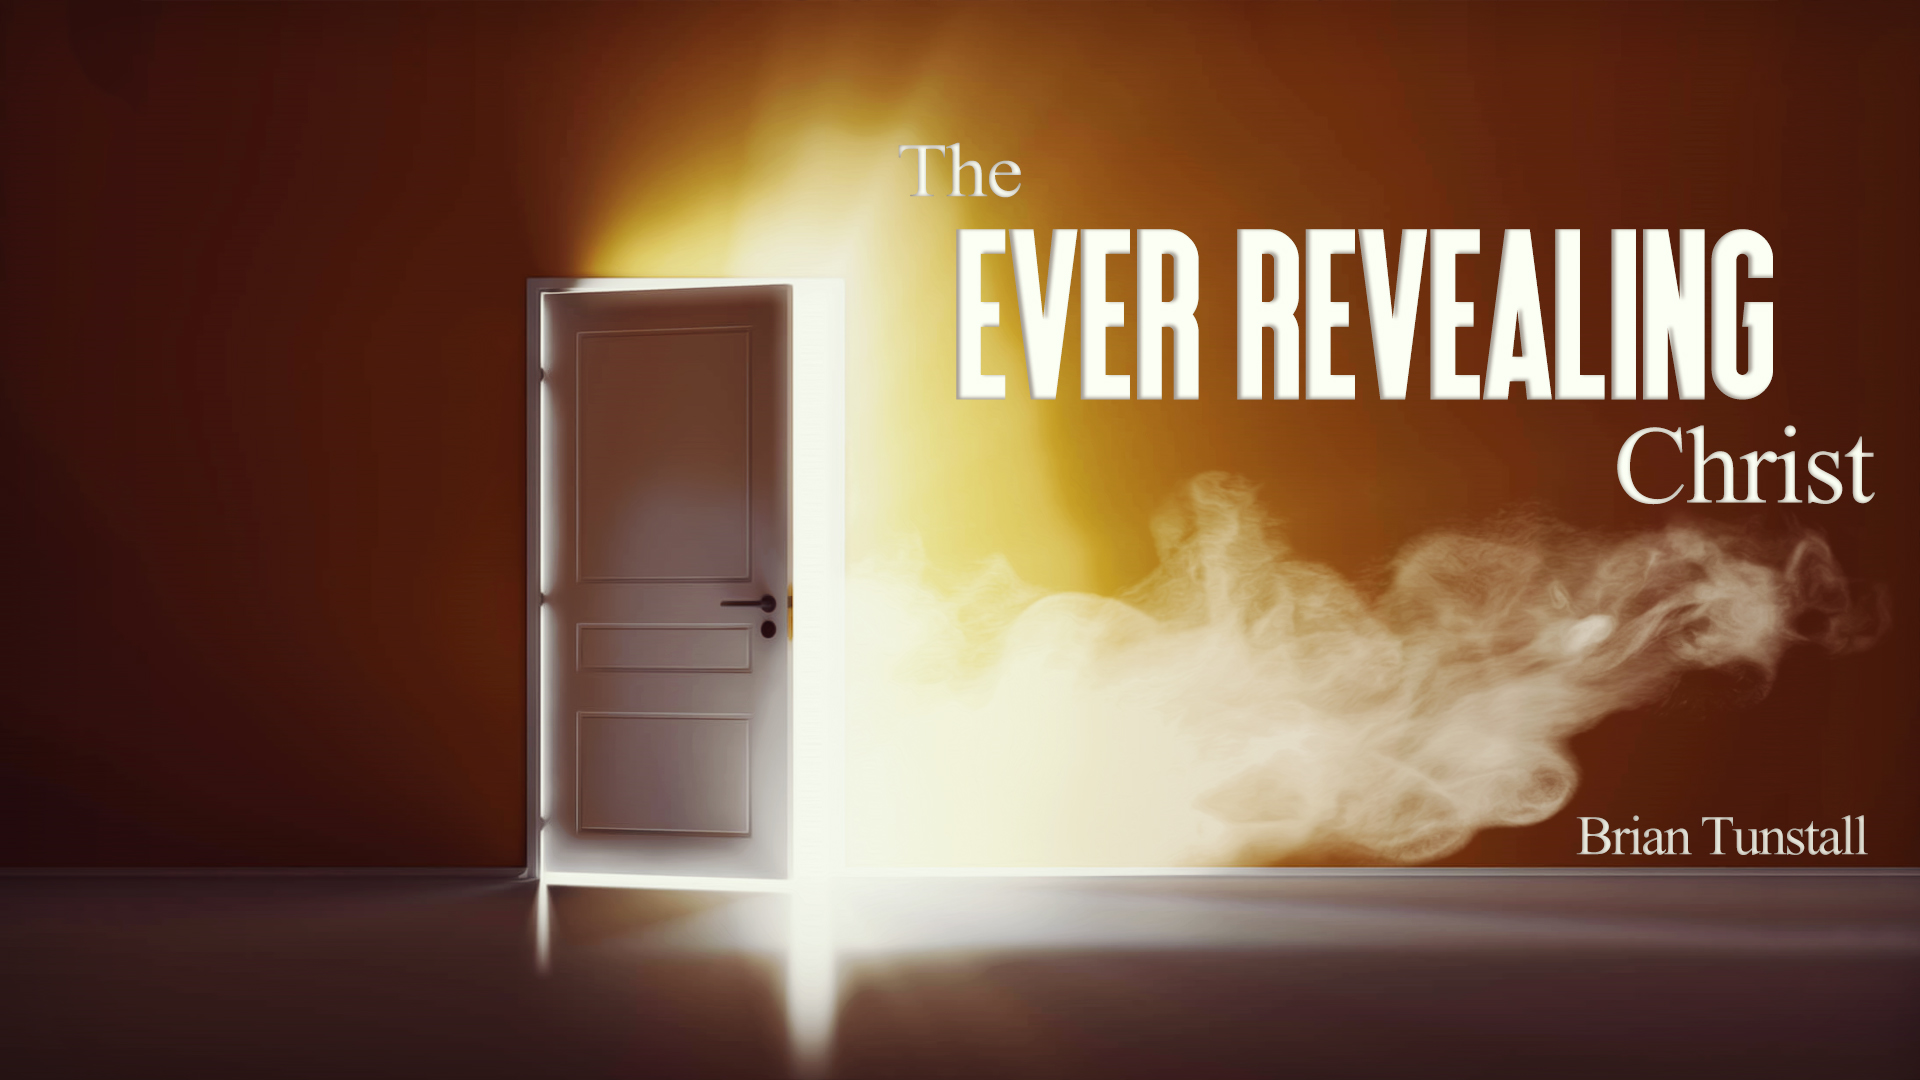 The Ever Revealing Christ